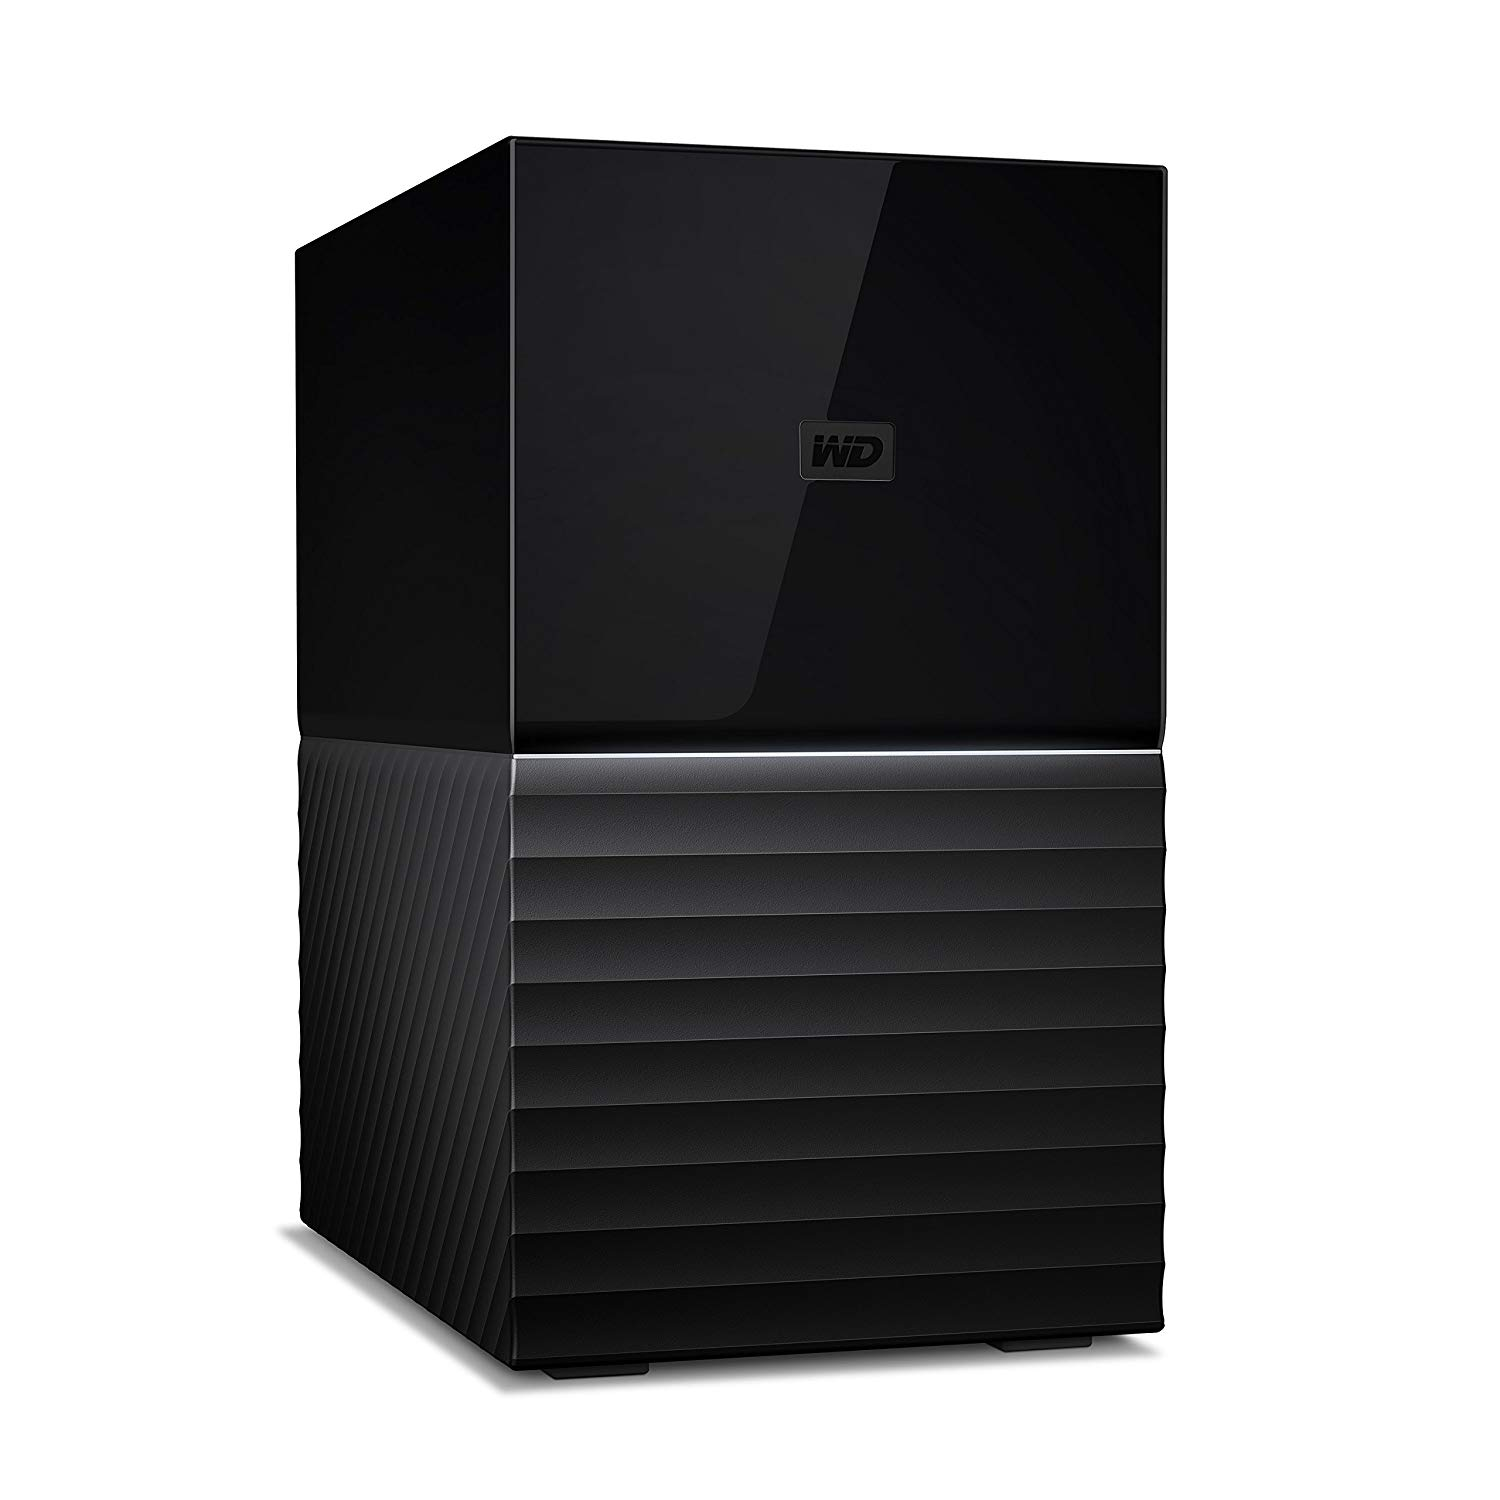 wd my book duo 16tb review